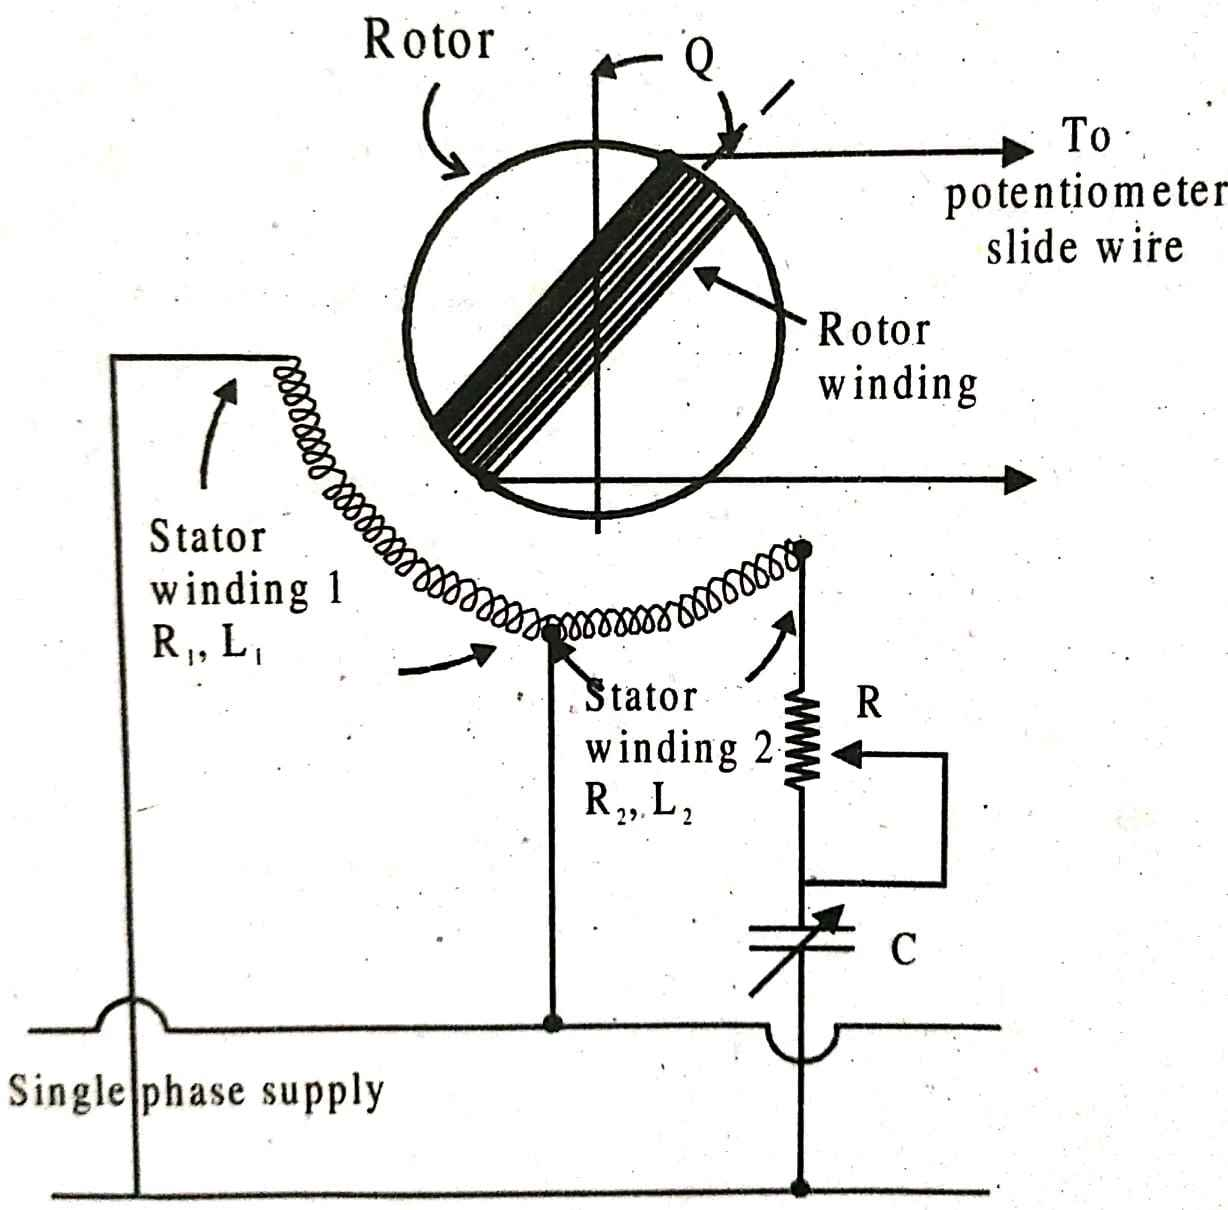 Polar type AC potentiometer | Electrical Shouters on